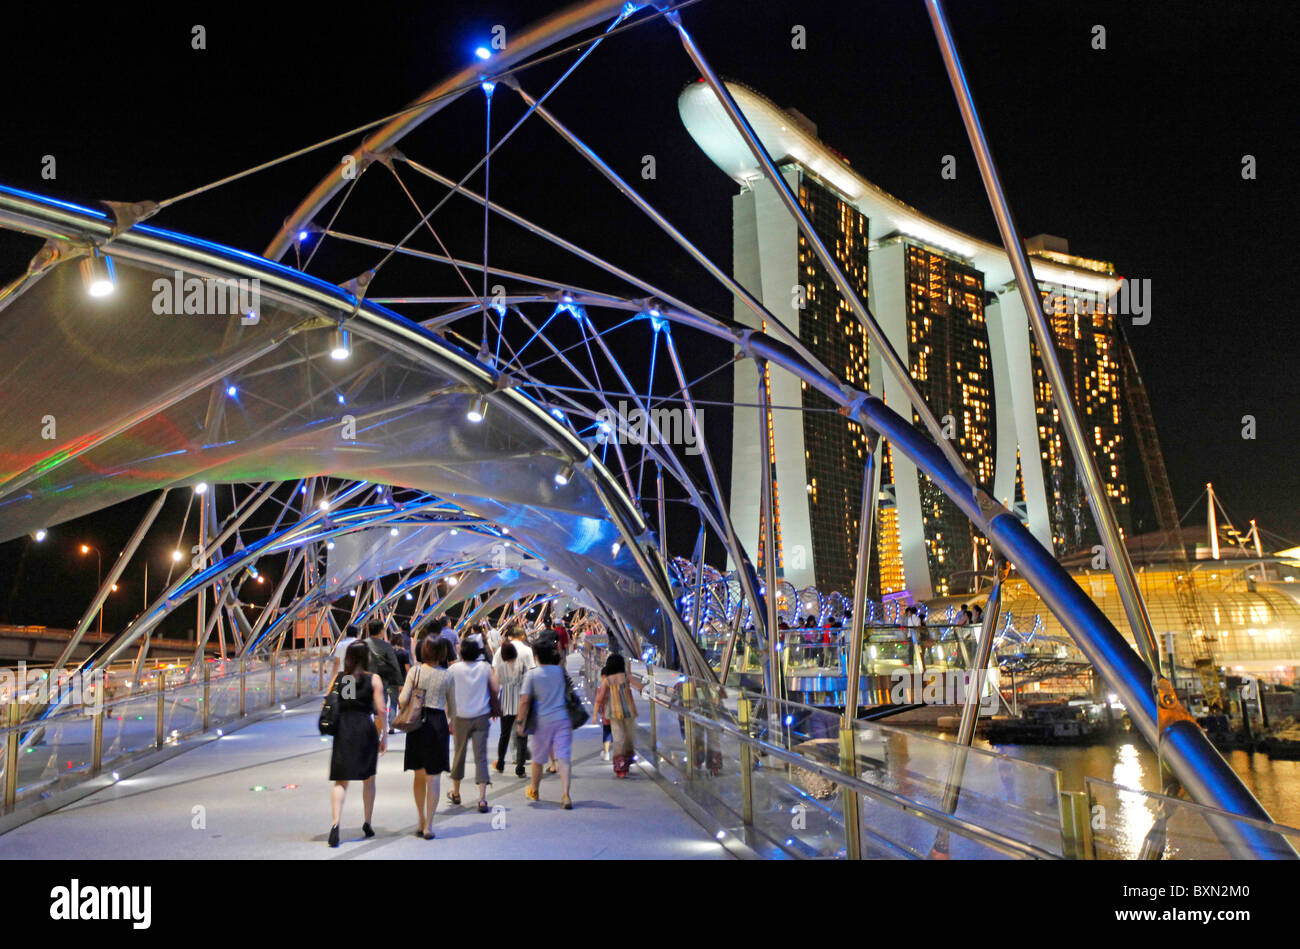 Singapore: The Helix Bridge at night with Marina Bay Sands Resort Hotel and Shopping Mall in the backgrounnd - Stock Image